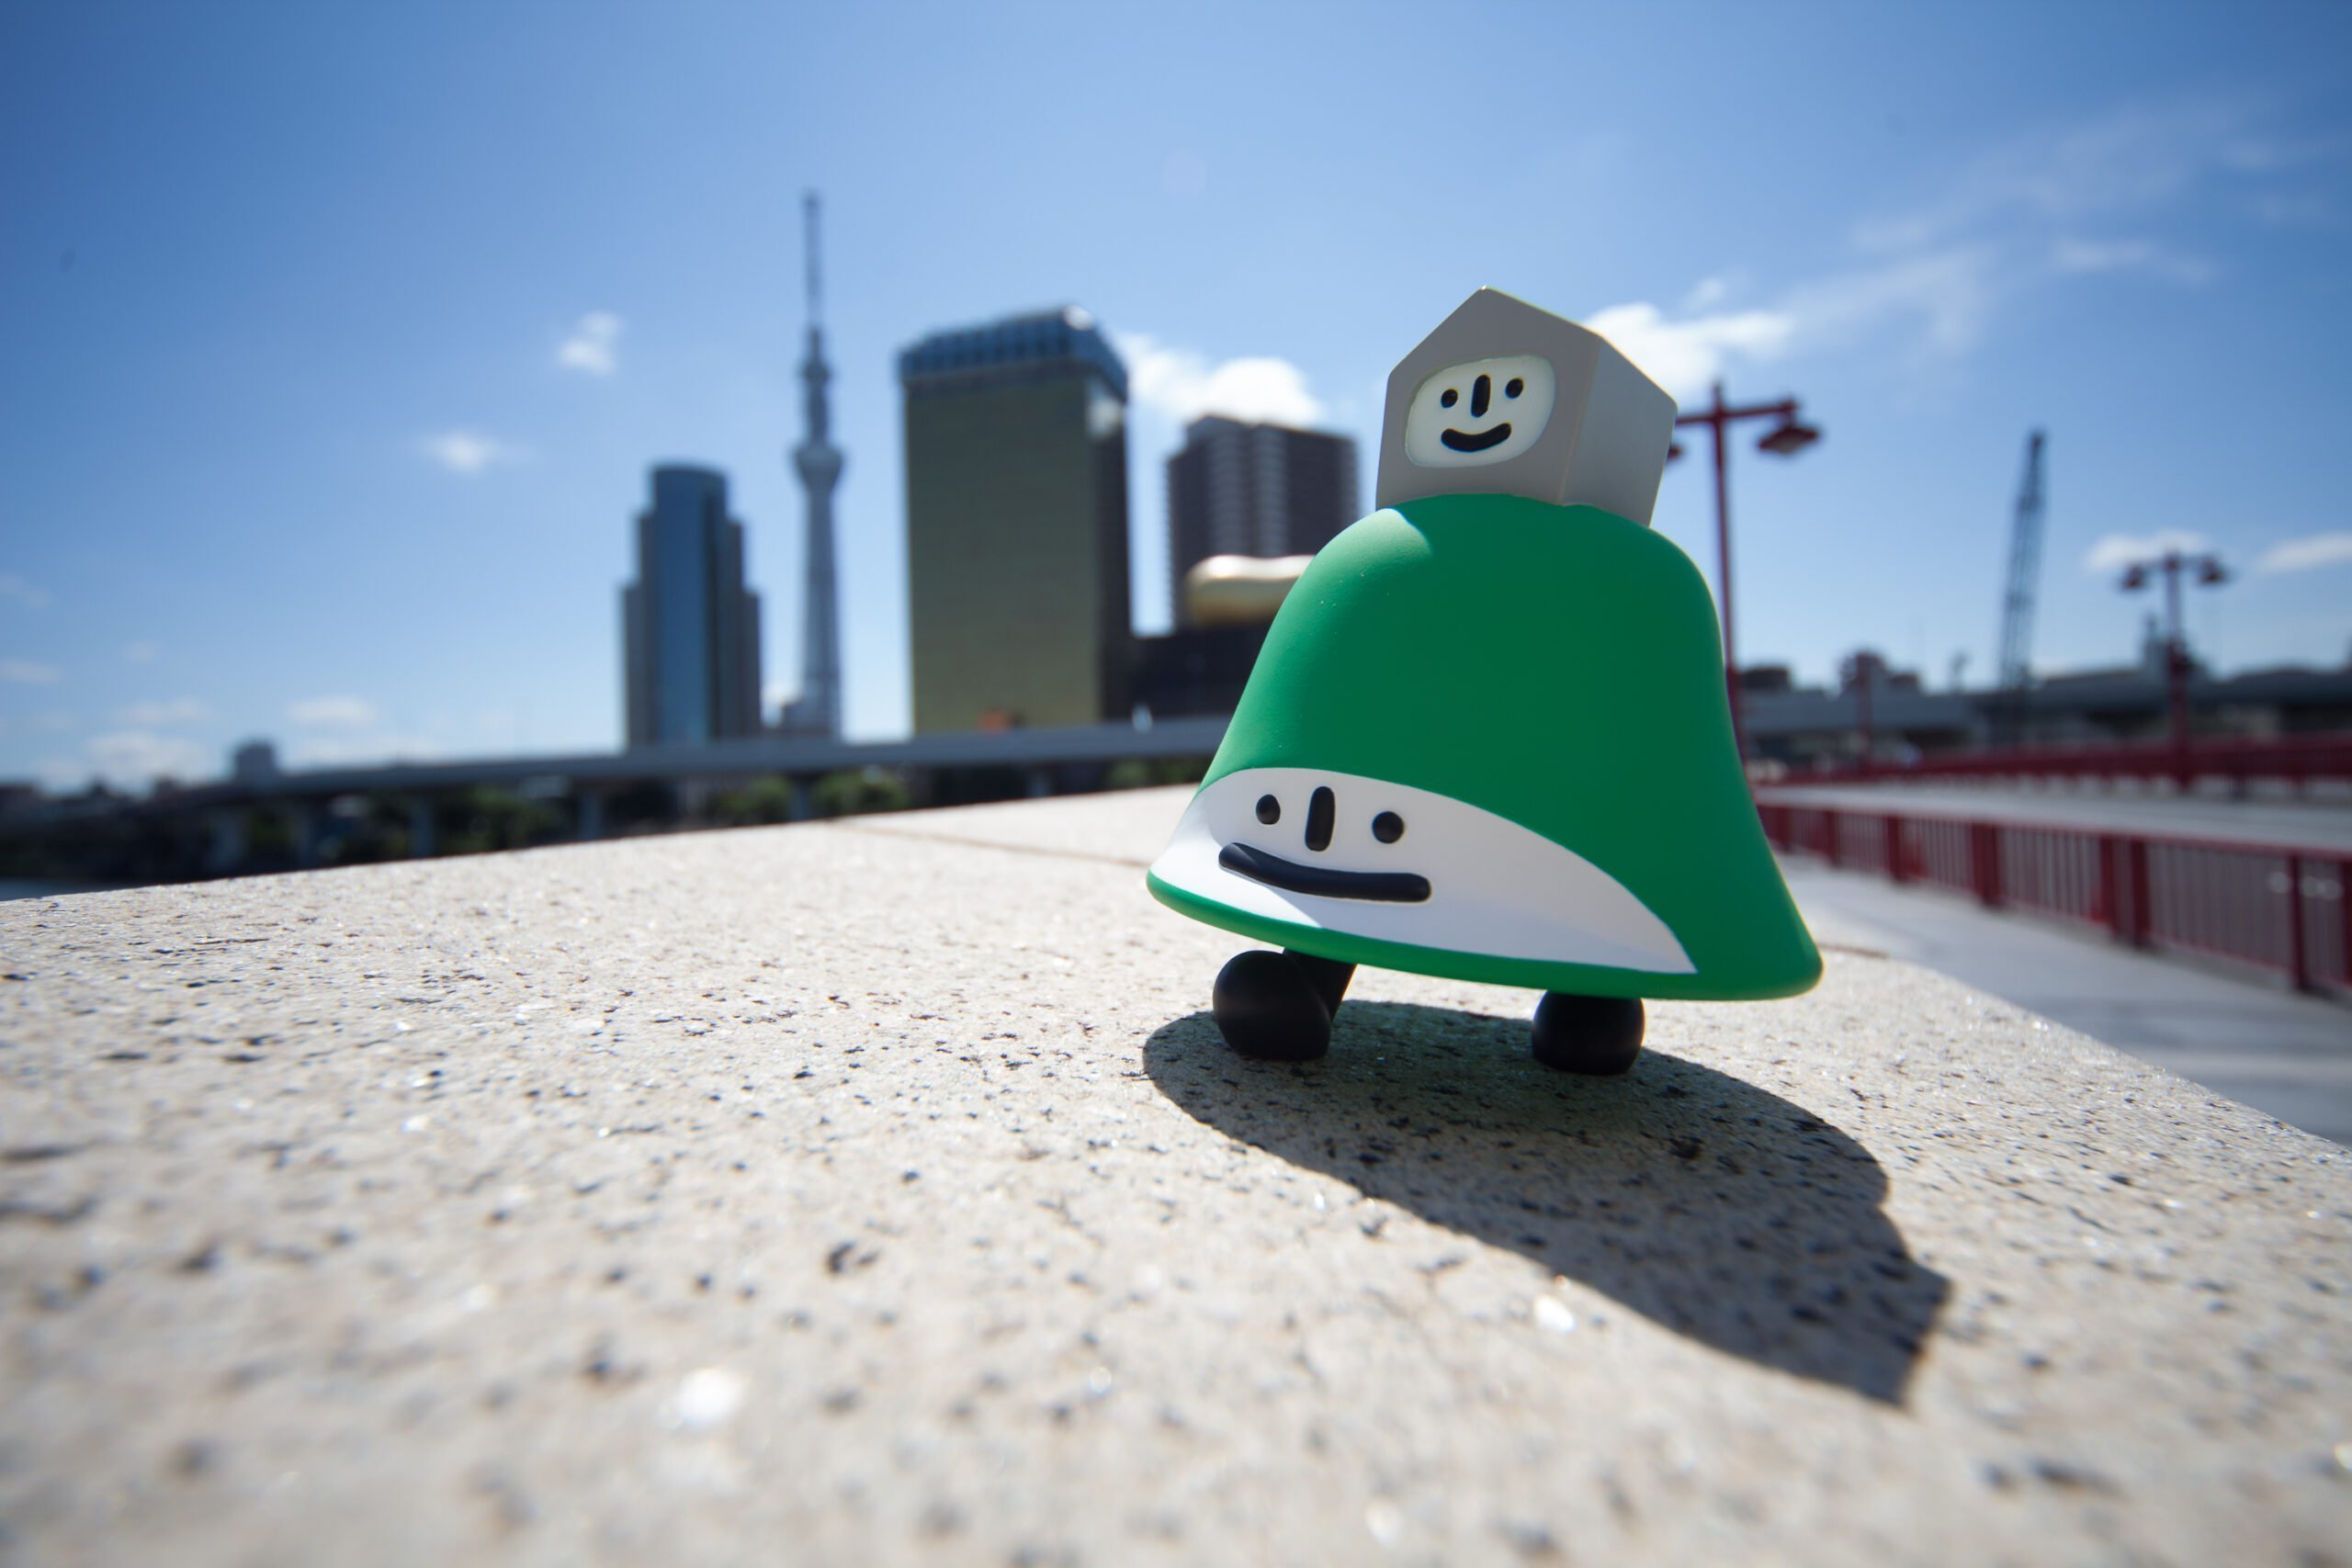 Lawhill vinyl figure in Tokyo (2012) photo by issekinicho.fr